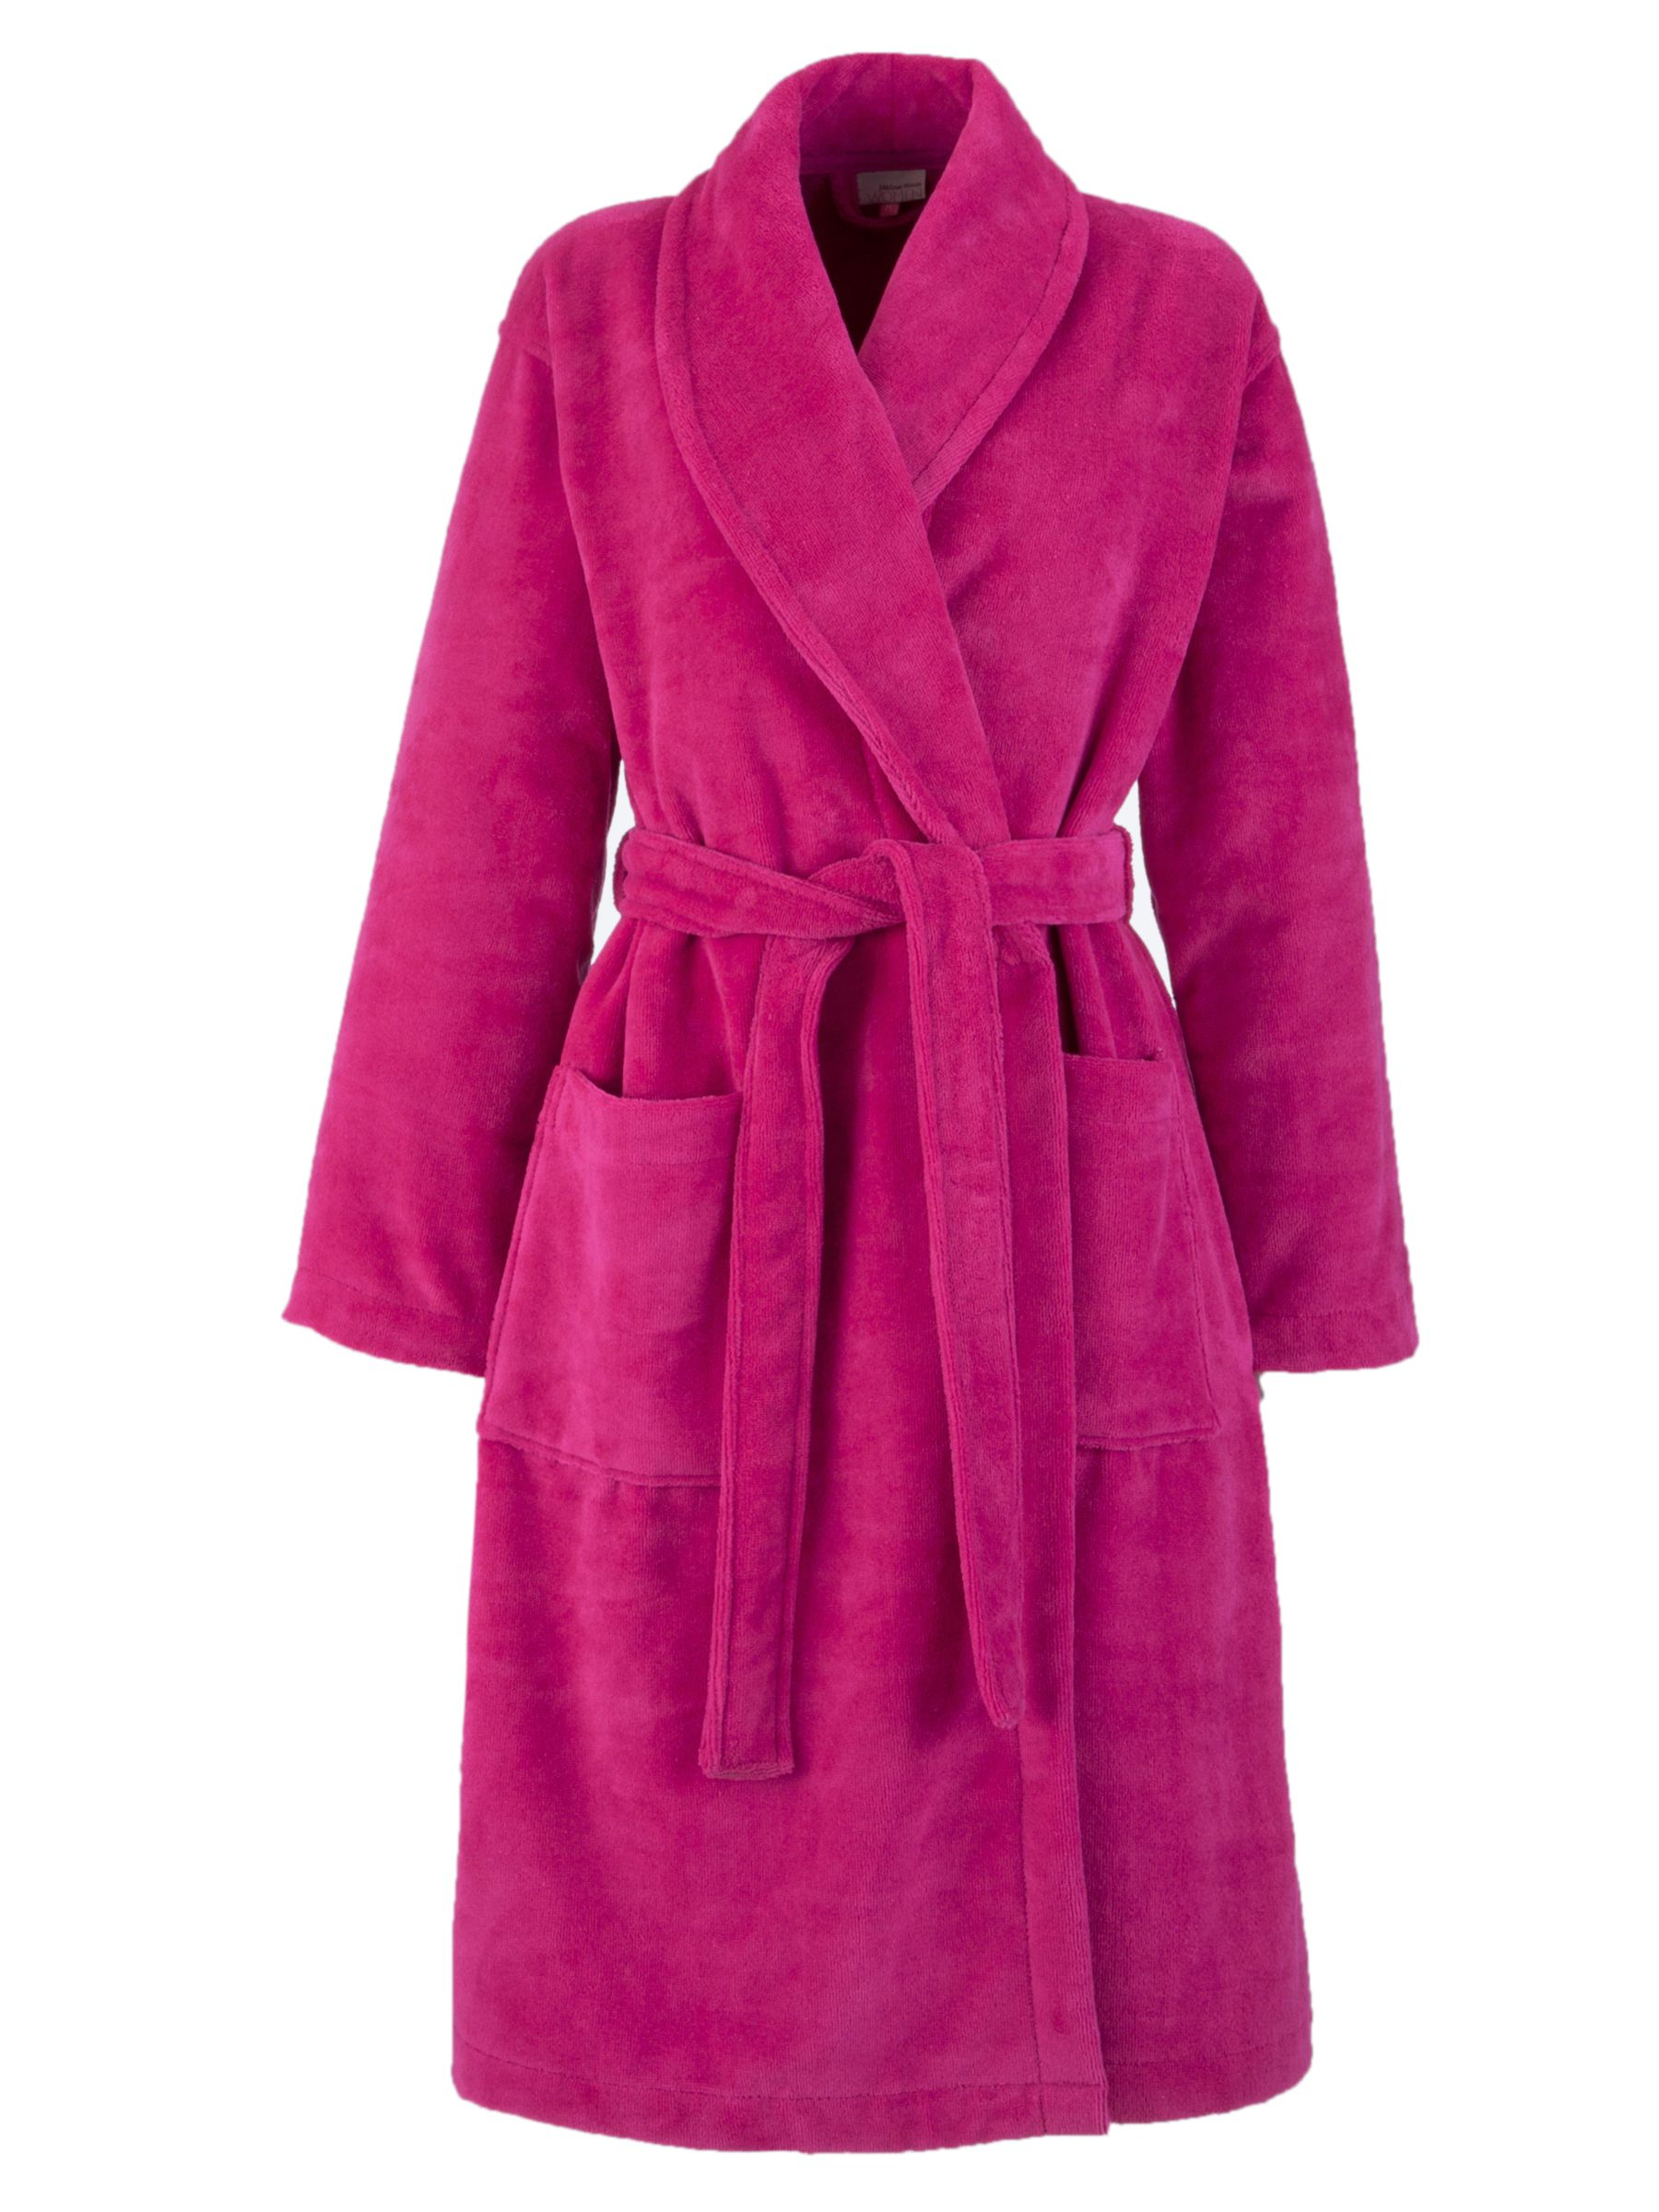 John Lewis Velour Robe, Raspberry